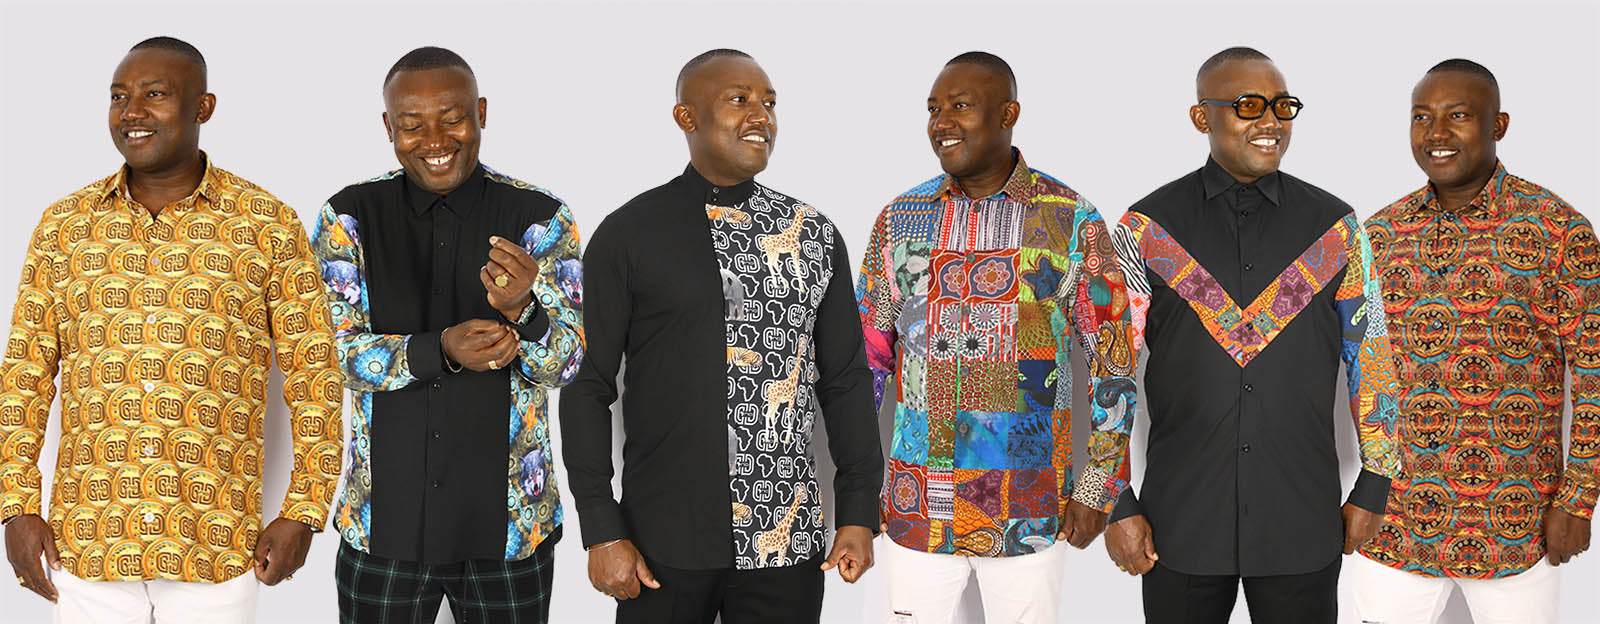 Discover the most up-to-date men's shirts | WI | Stylish African Shirts for Men